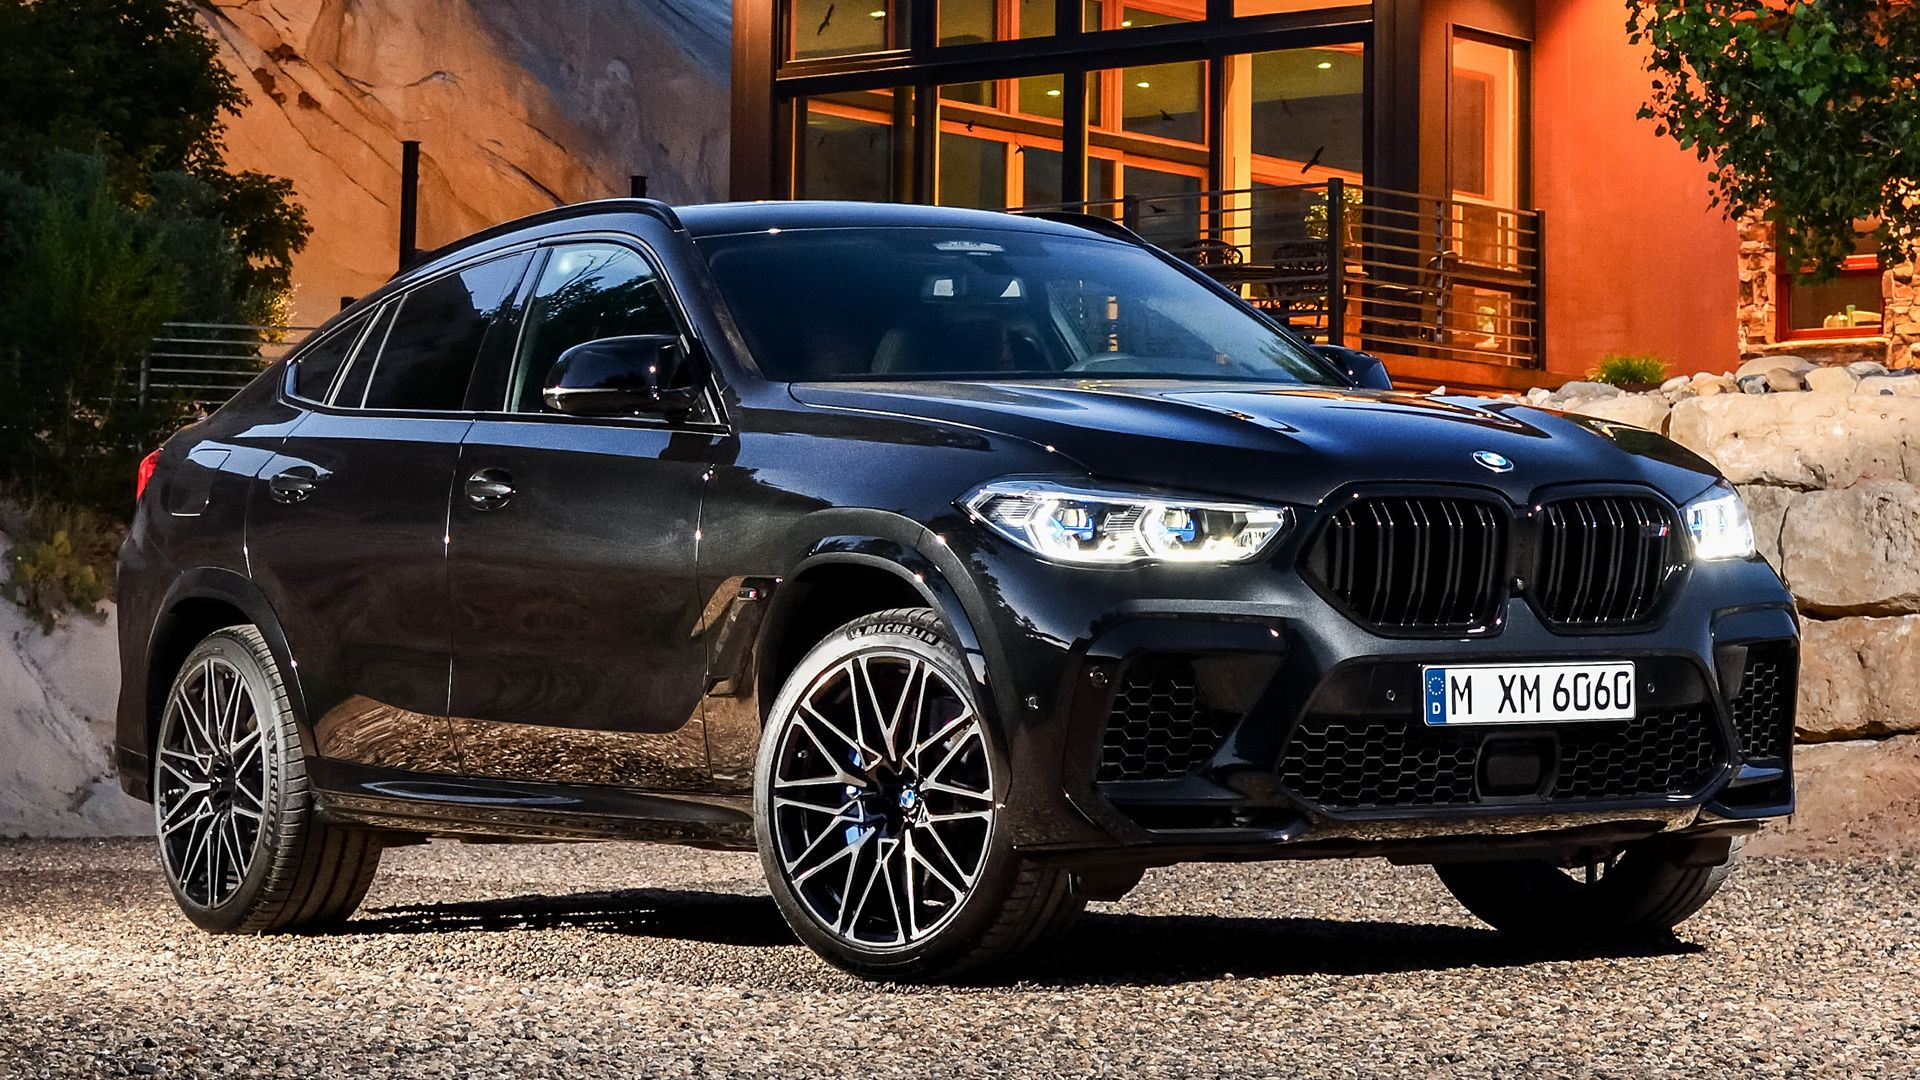 Vehicles Bmw X6 M Competition Bmw Crossover Car Suv Luxury Car